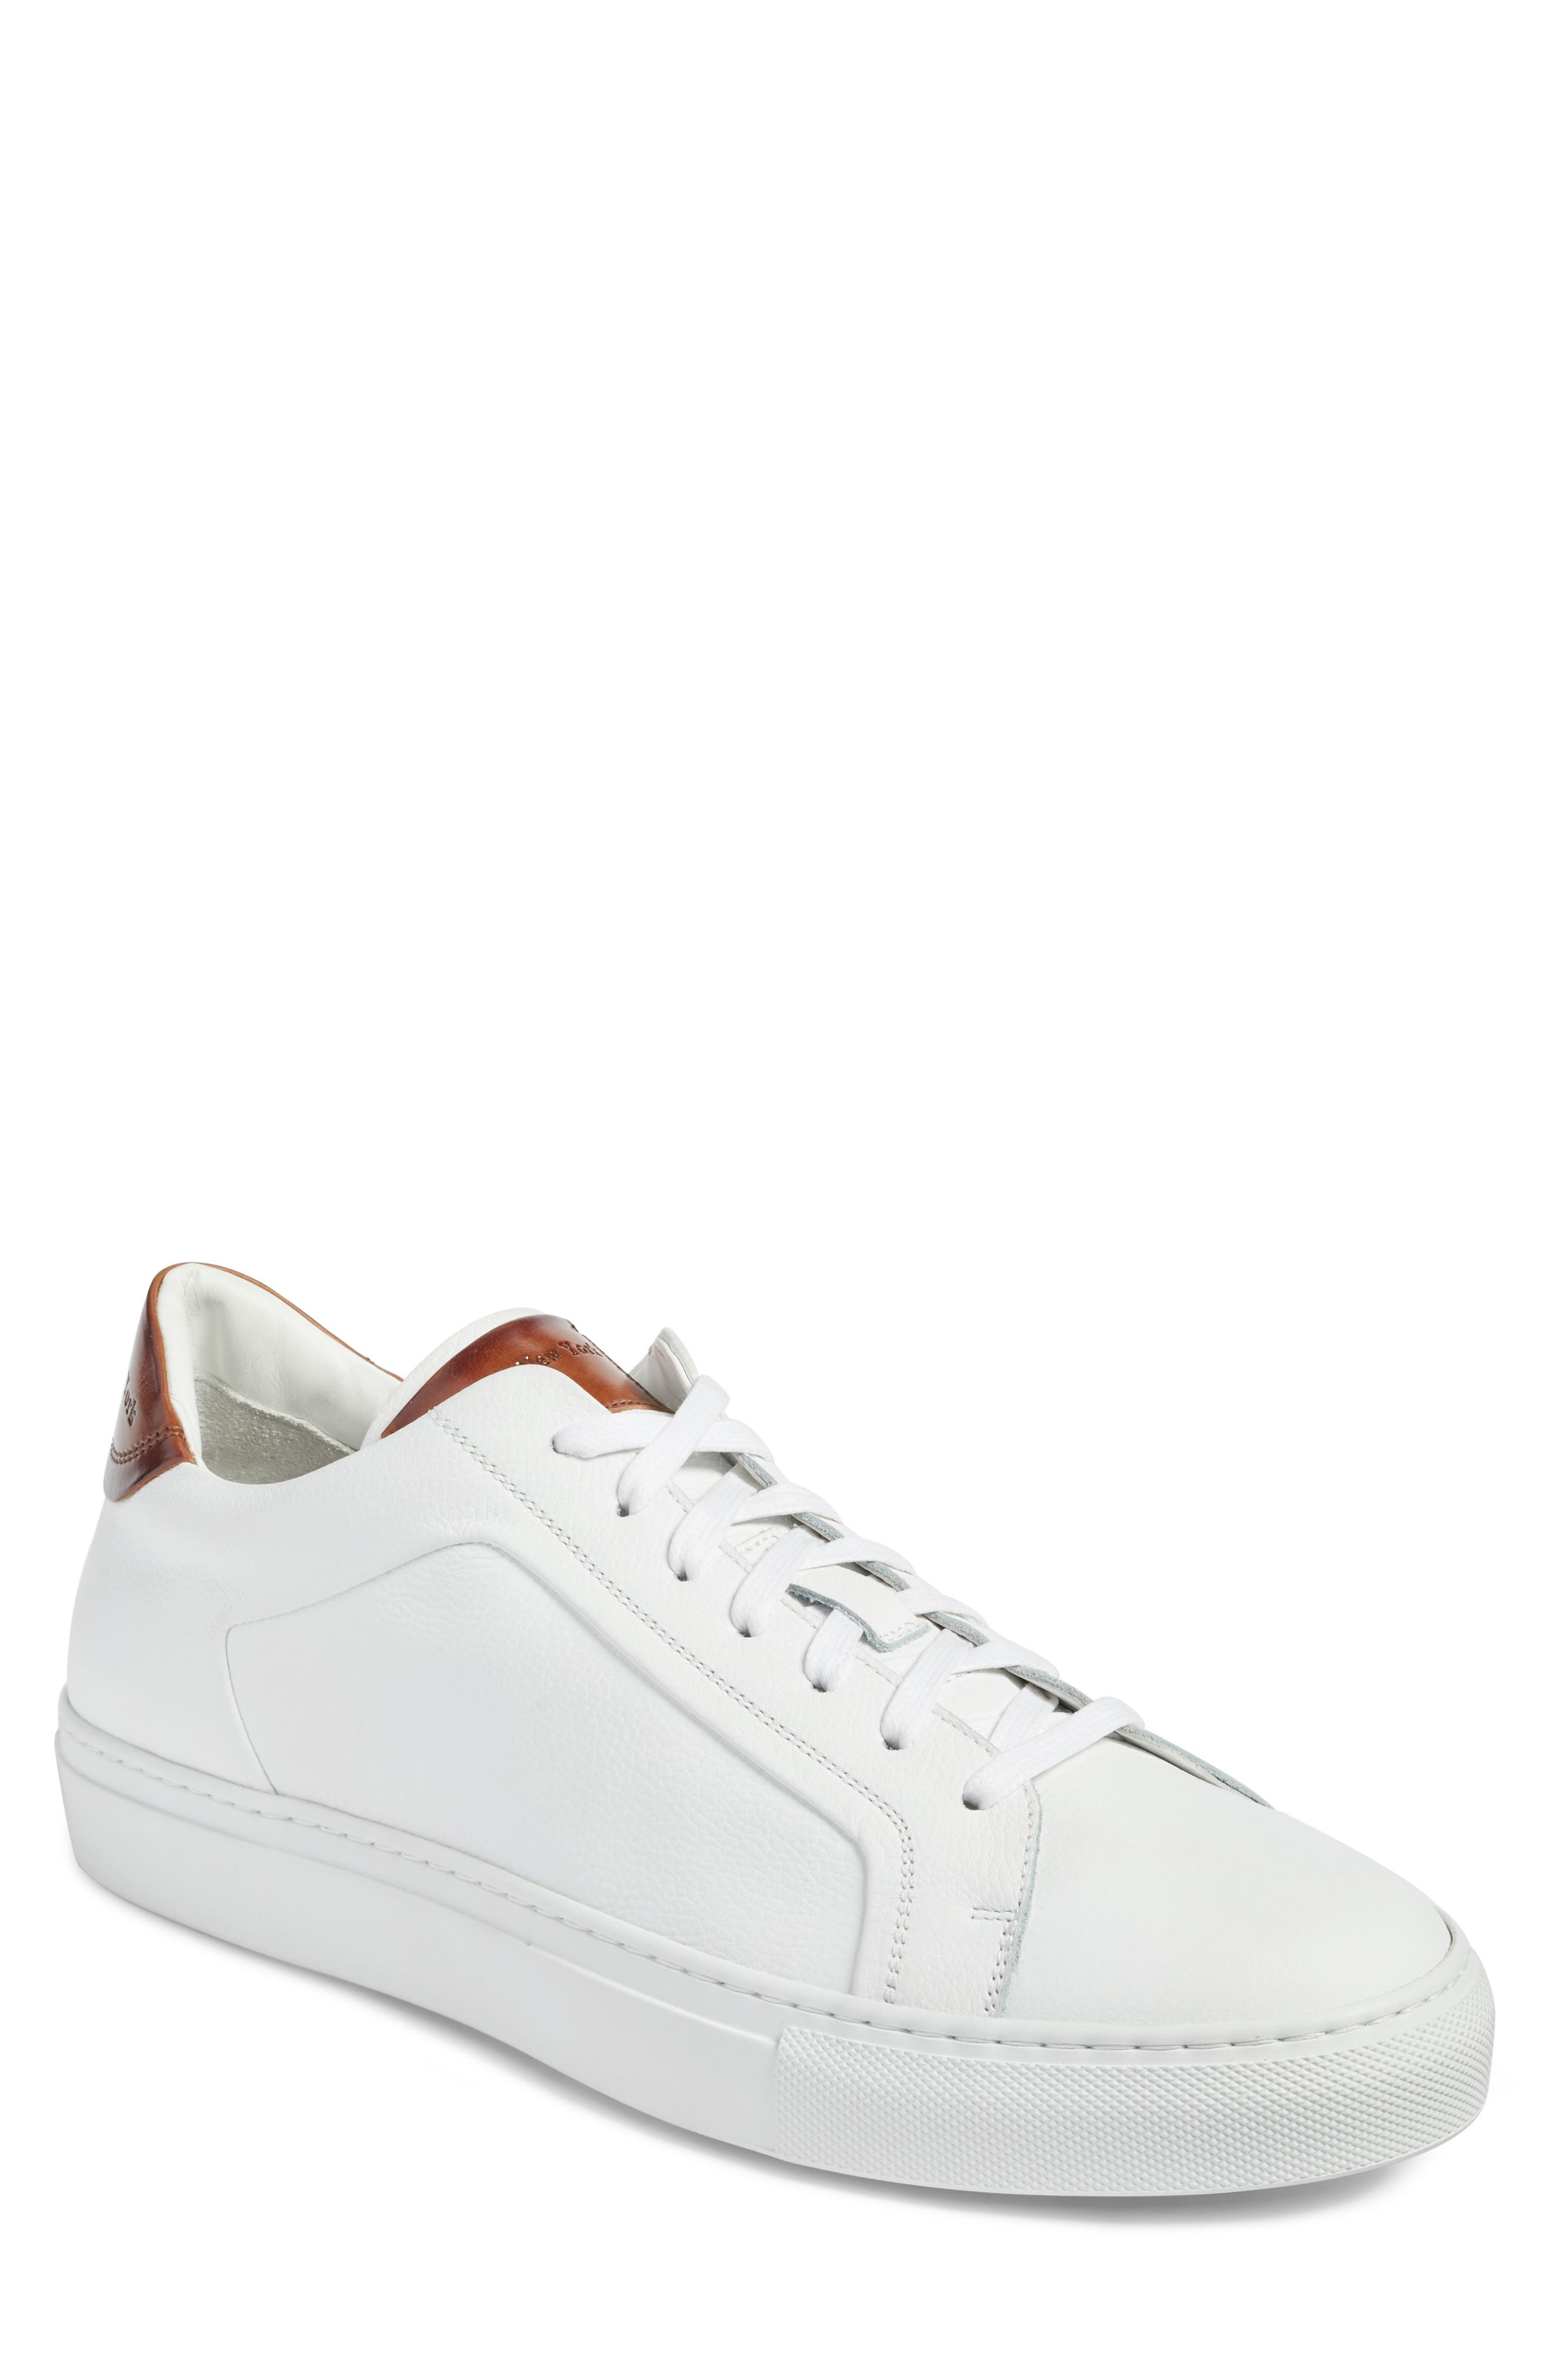 Carlin Sneaker,                         Main,                         color, White/ Tan Leather